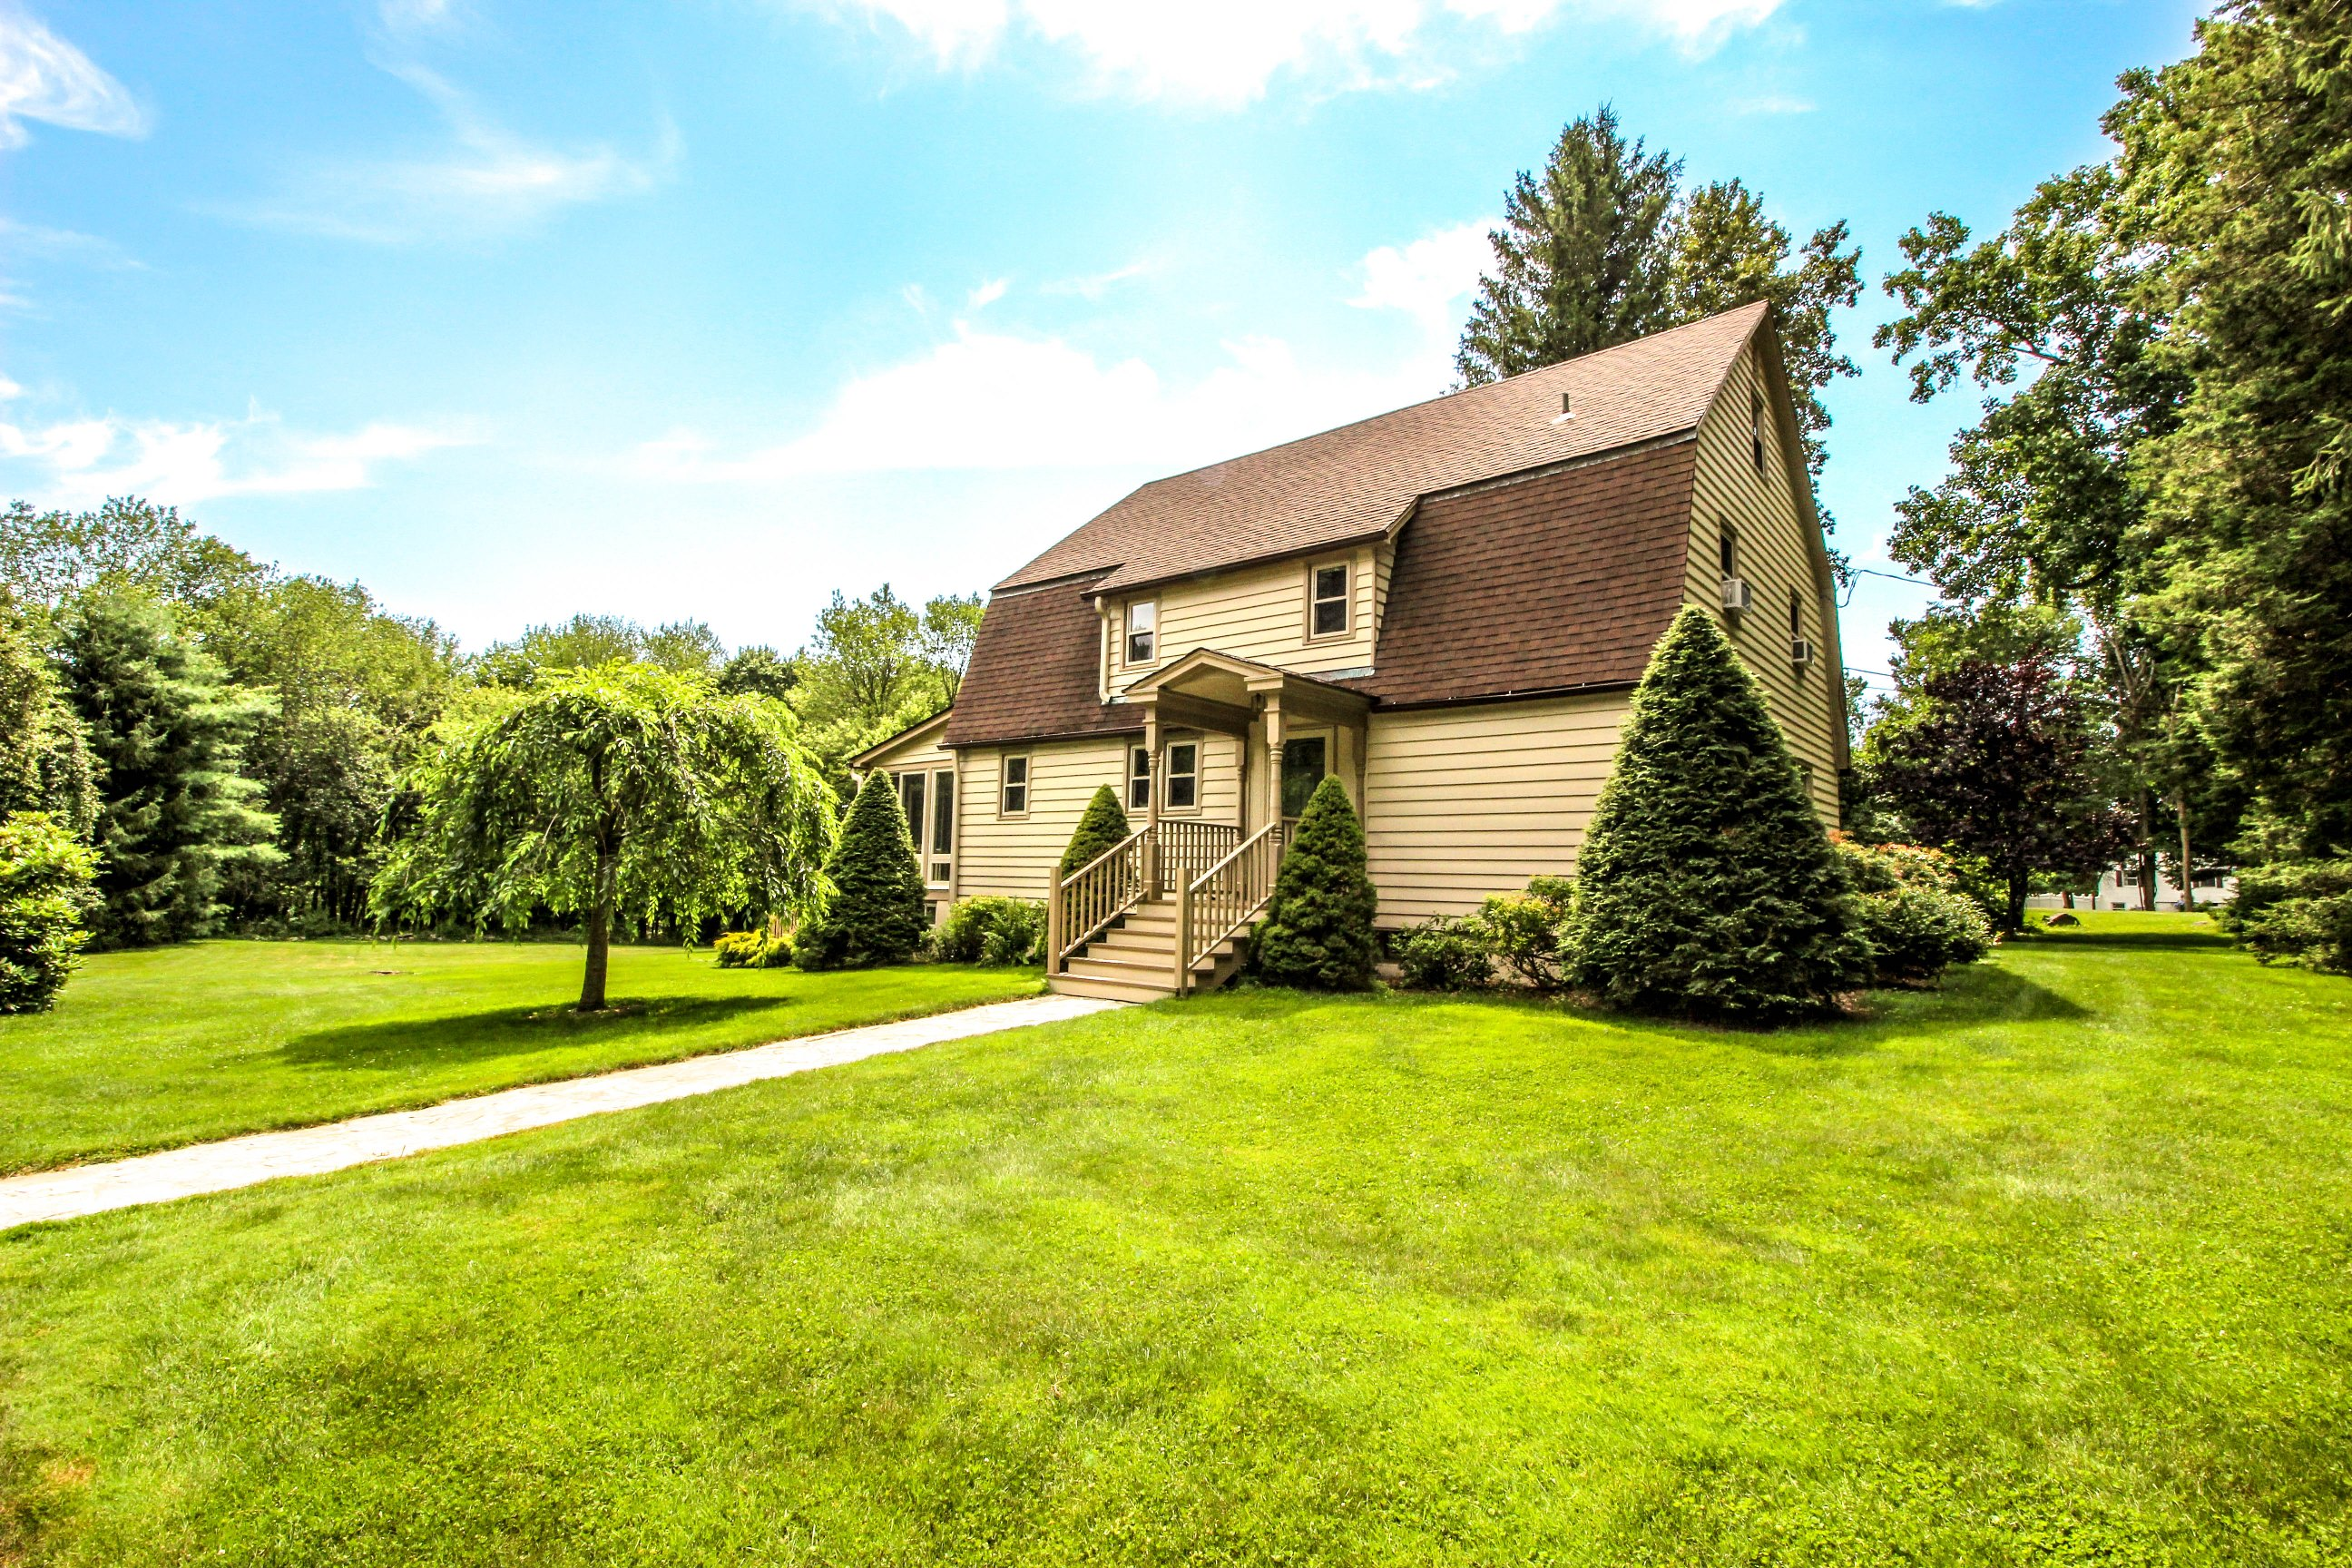 Single Family Home for Sale at Gorgeous Park-Like Level Yard 231 Middle River Road Danbury, Connecticut 06811 United States